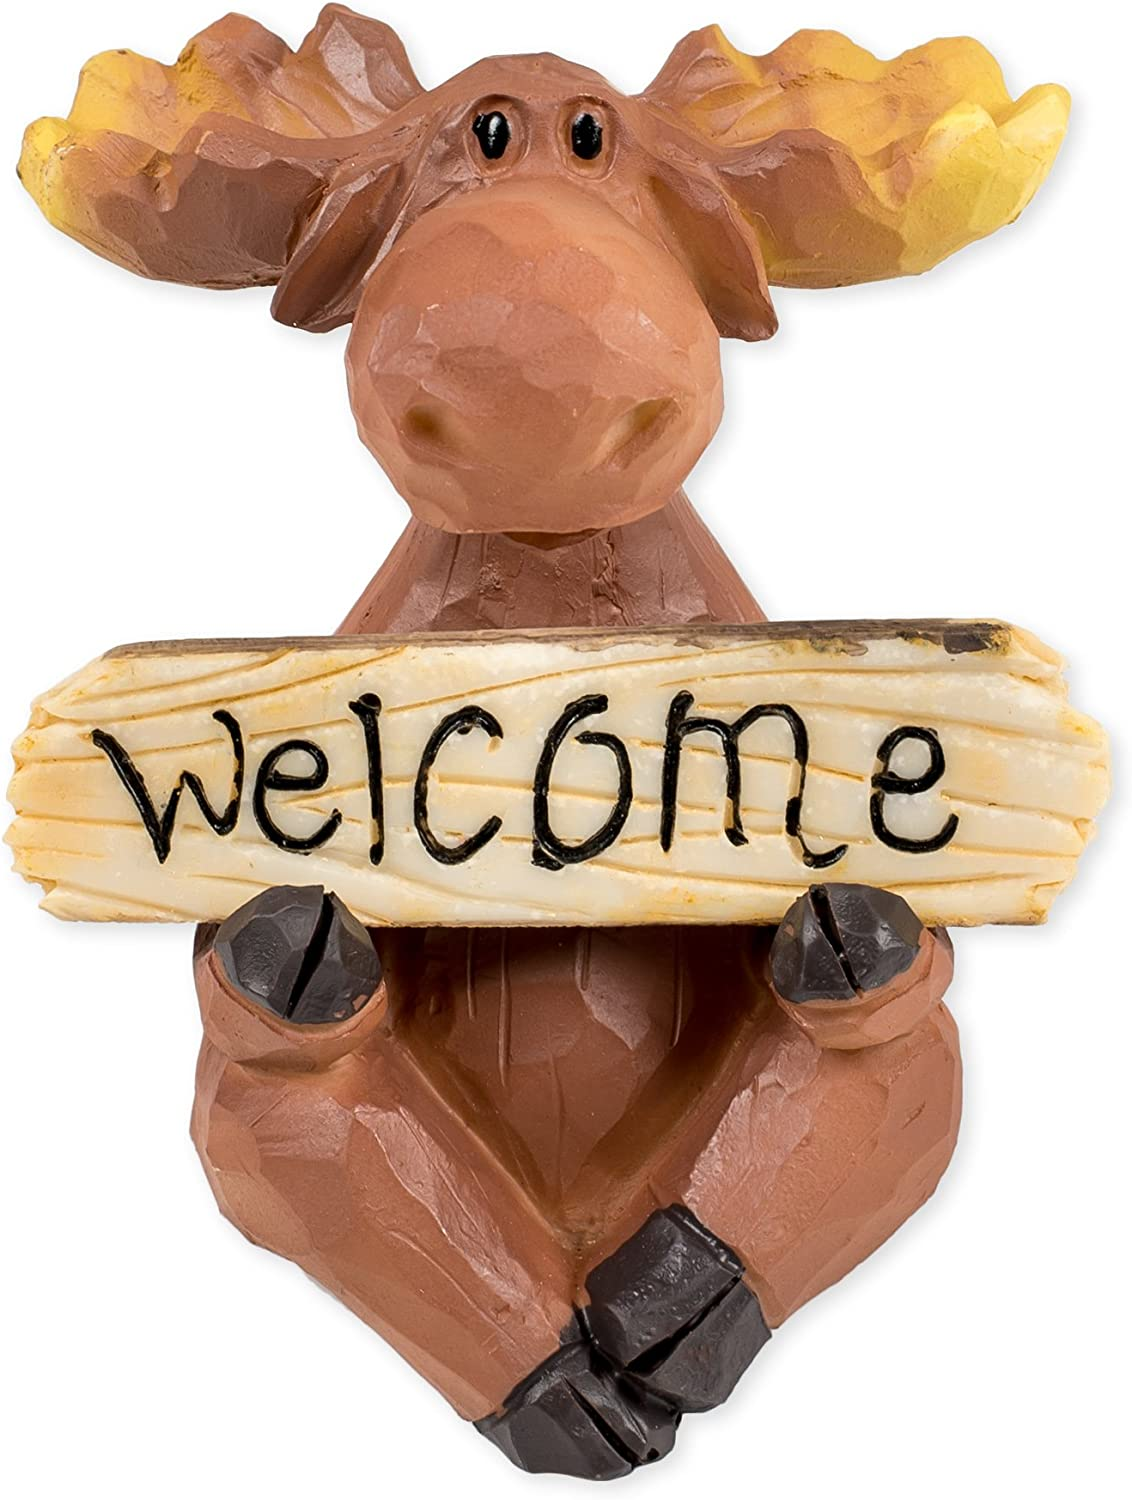 Slifka Sales Co. Moose with Welcome/Go Away Sign 3.5 x 3.5 x 4 Inch Resin Crafted Tabletop Figurine